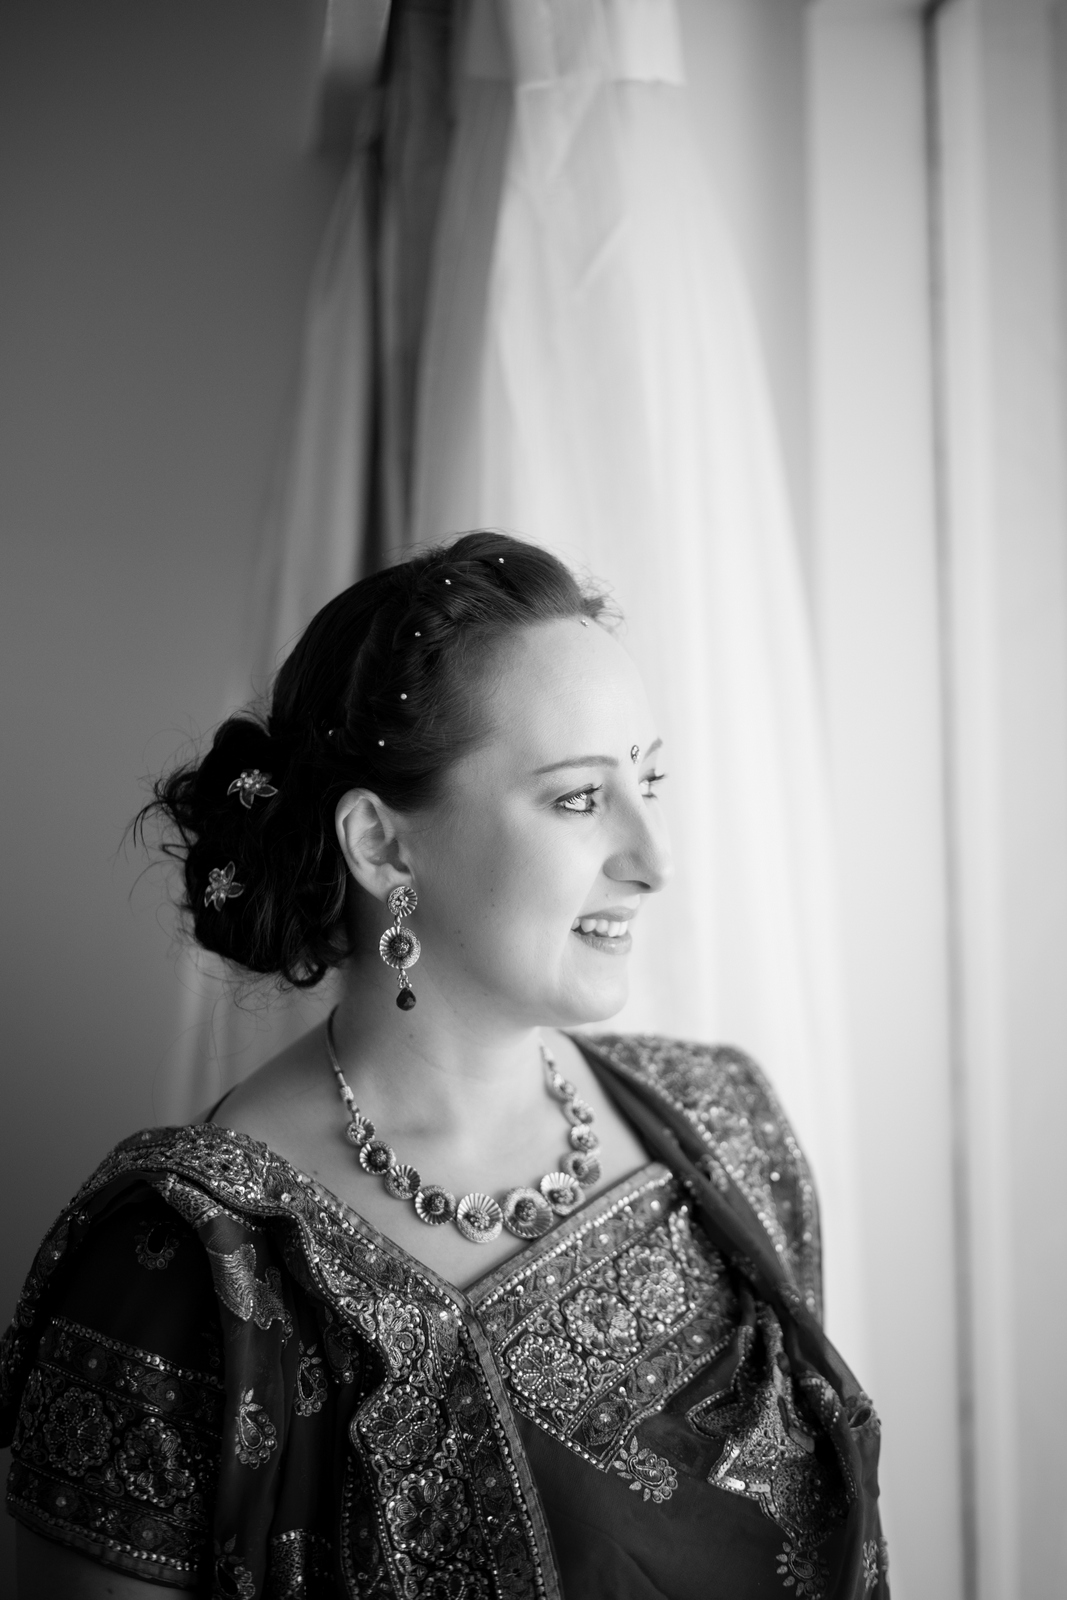 mumbai-hindu-wedding-into-candid-photography-ts-11.jpg